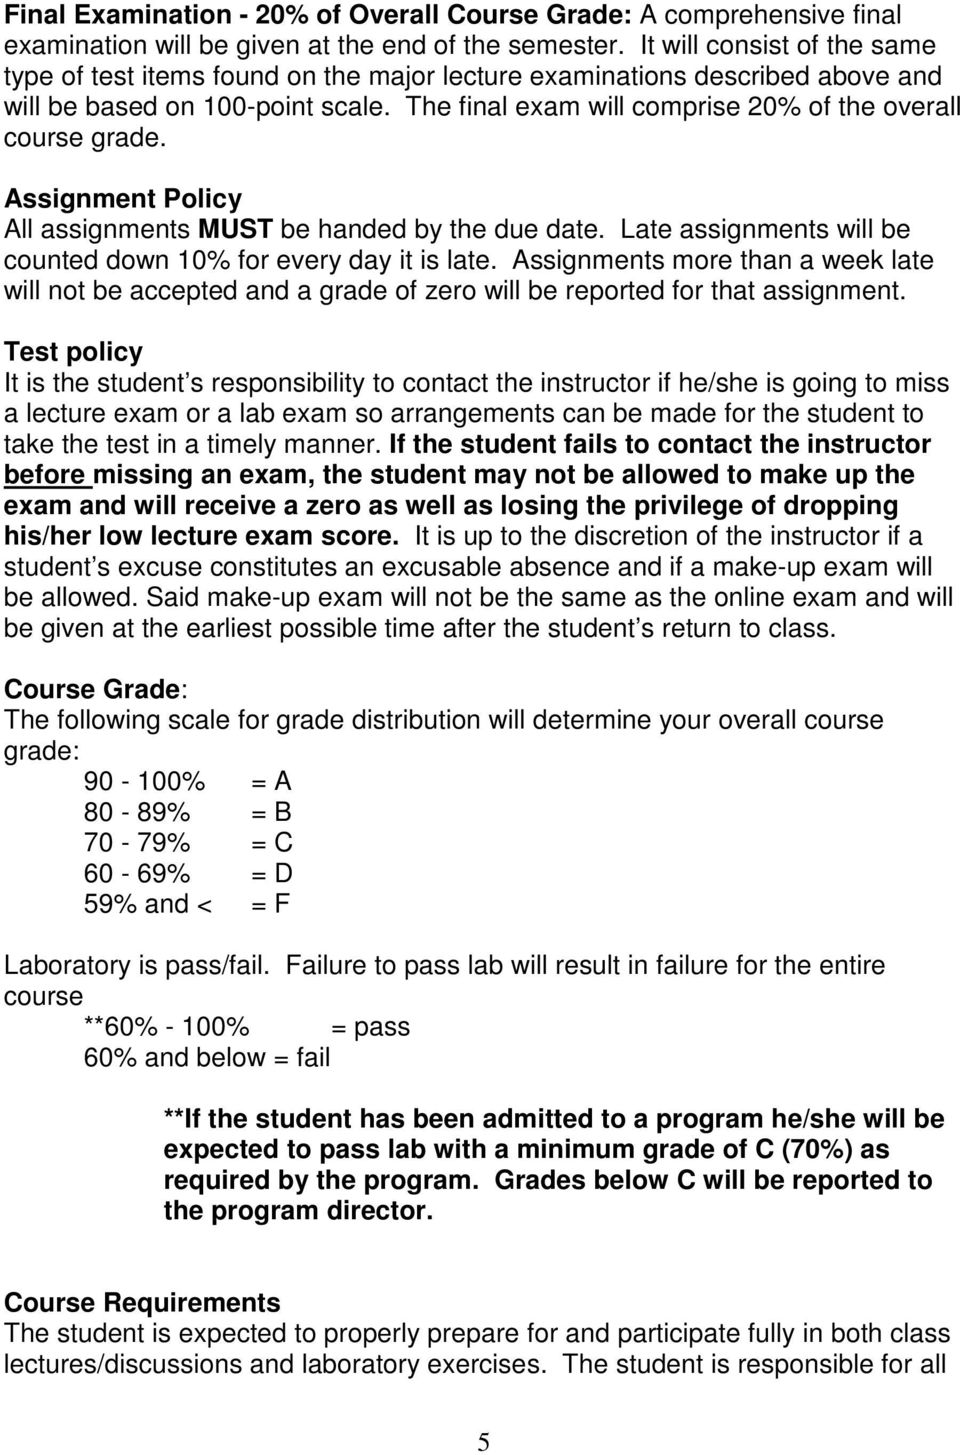 The final exam will comprise 20% of the overall course grade. Assignment Policy All assignments MUST be handed by the due date. Late assignments will be counted down 10% for every day it is late.